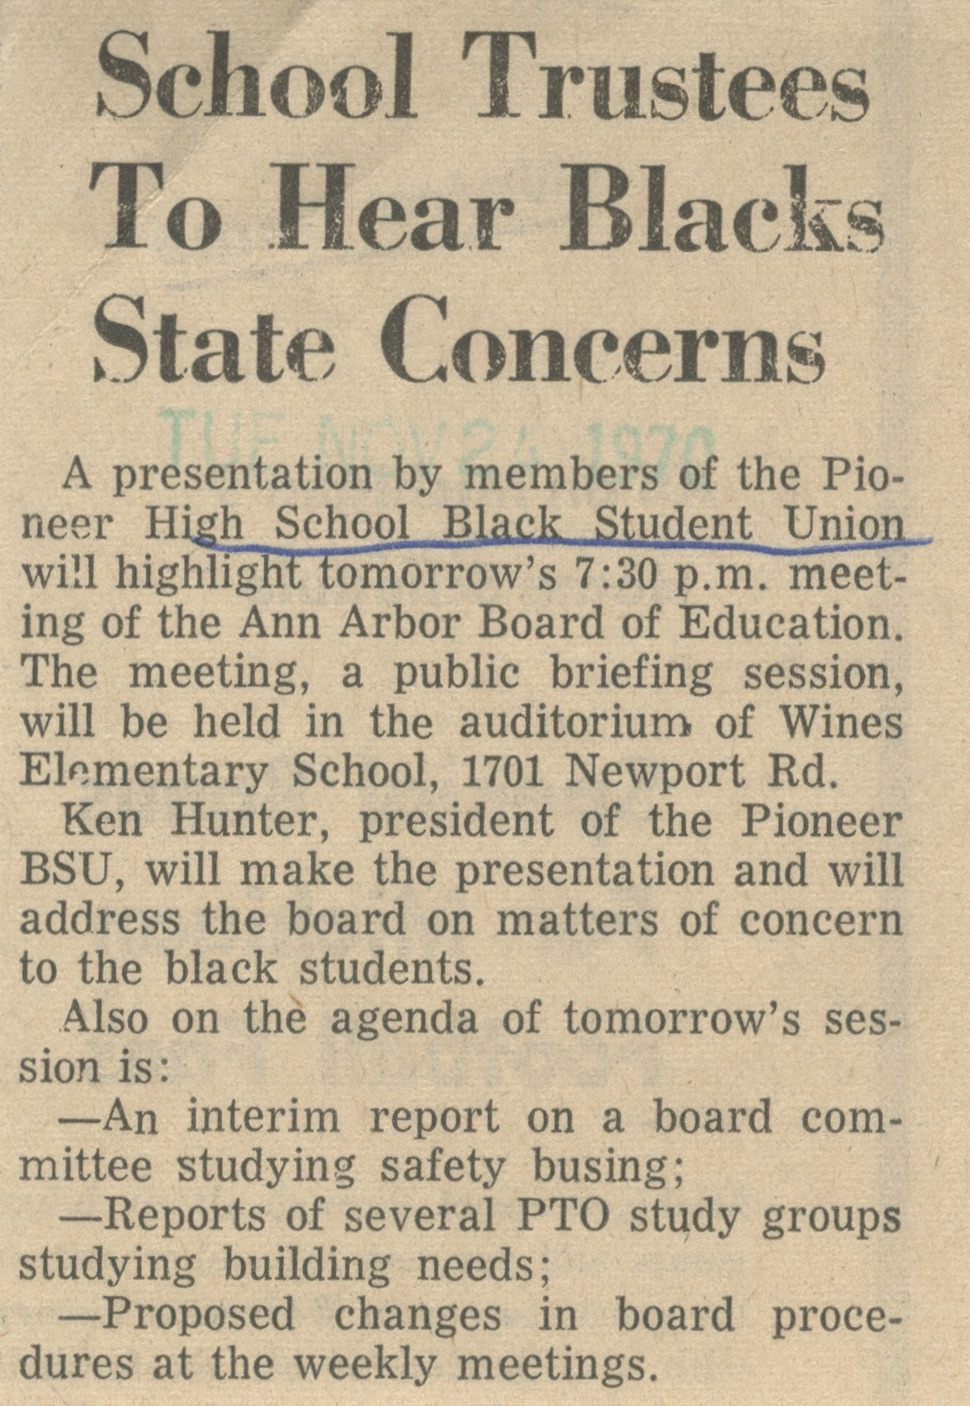 School Trustees To Hear Blacks State Concerns image